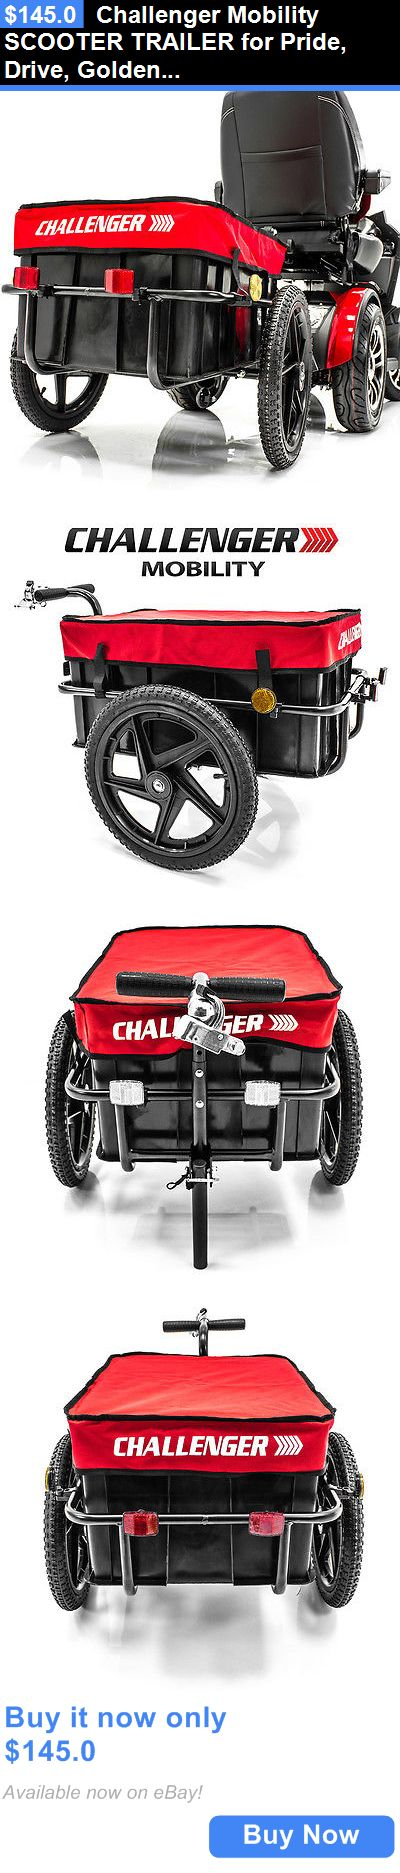 Mobility Scooters: Challenger Mobility Scooter Trailer For Pride, Drive, Golden Electric Scooters BUY IT NOW ONLY: $145.0